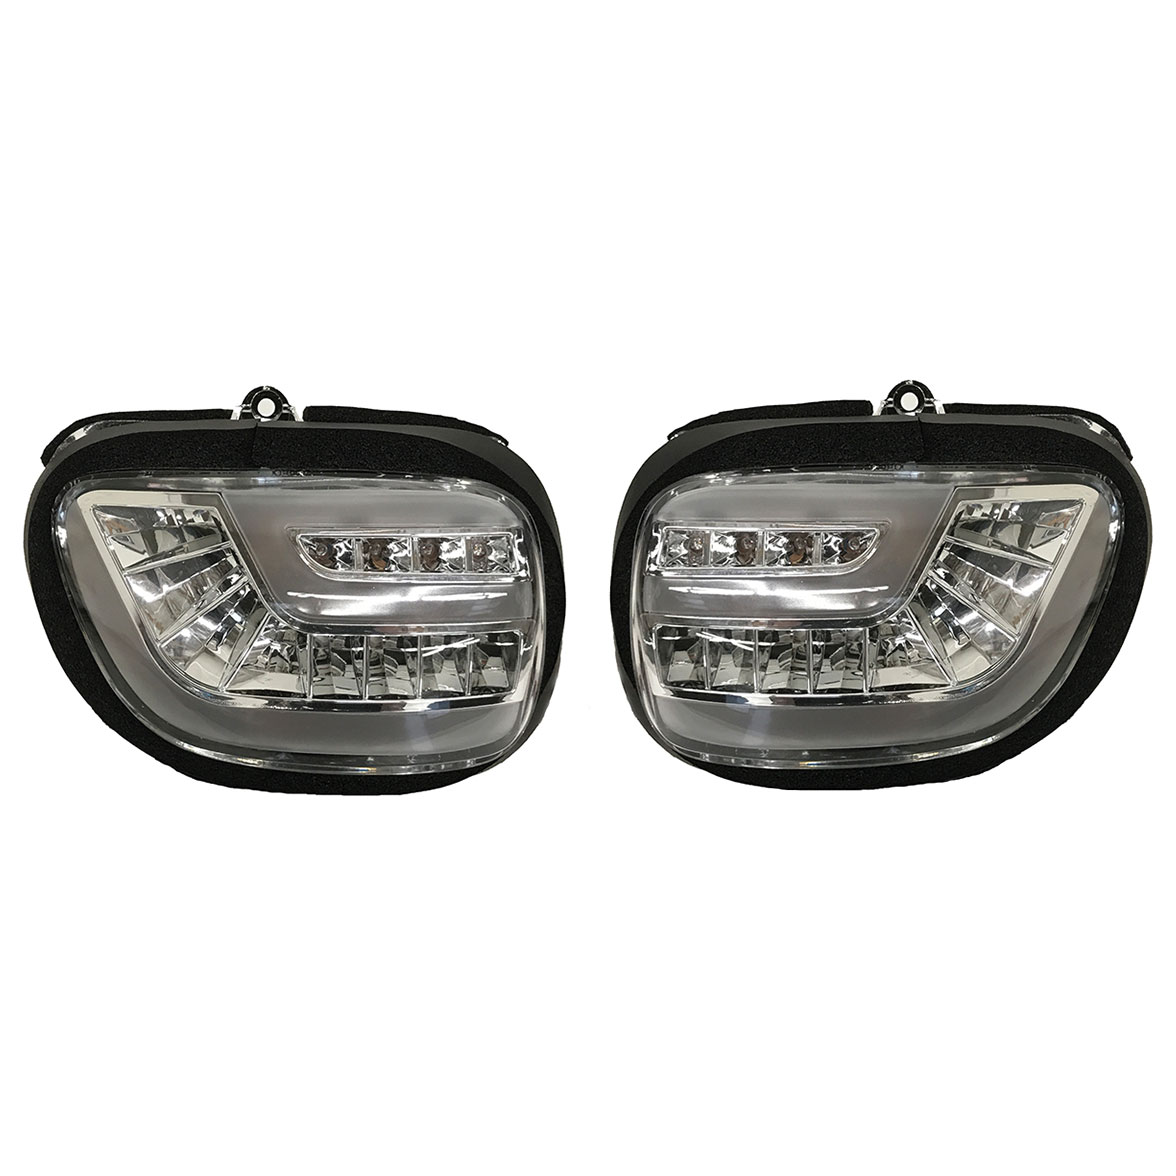 PathfinderLED Dynamic Sequential Clear LED Front Signals with Daytime Running Lights